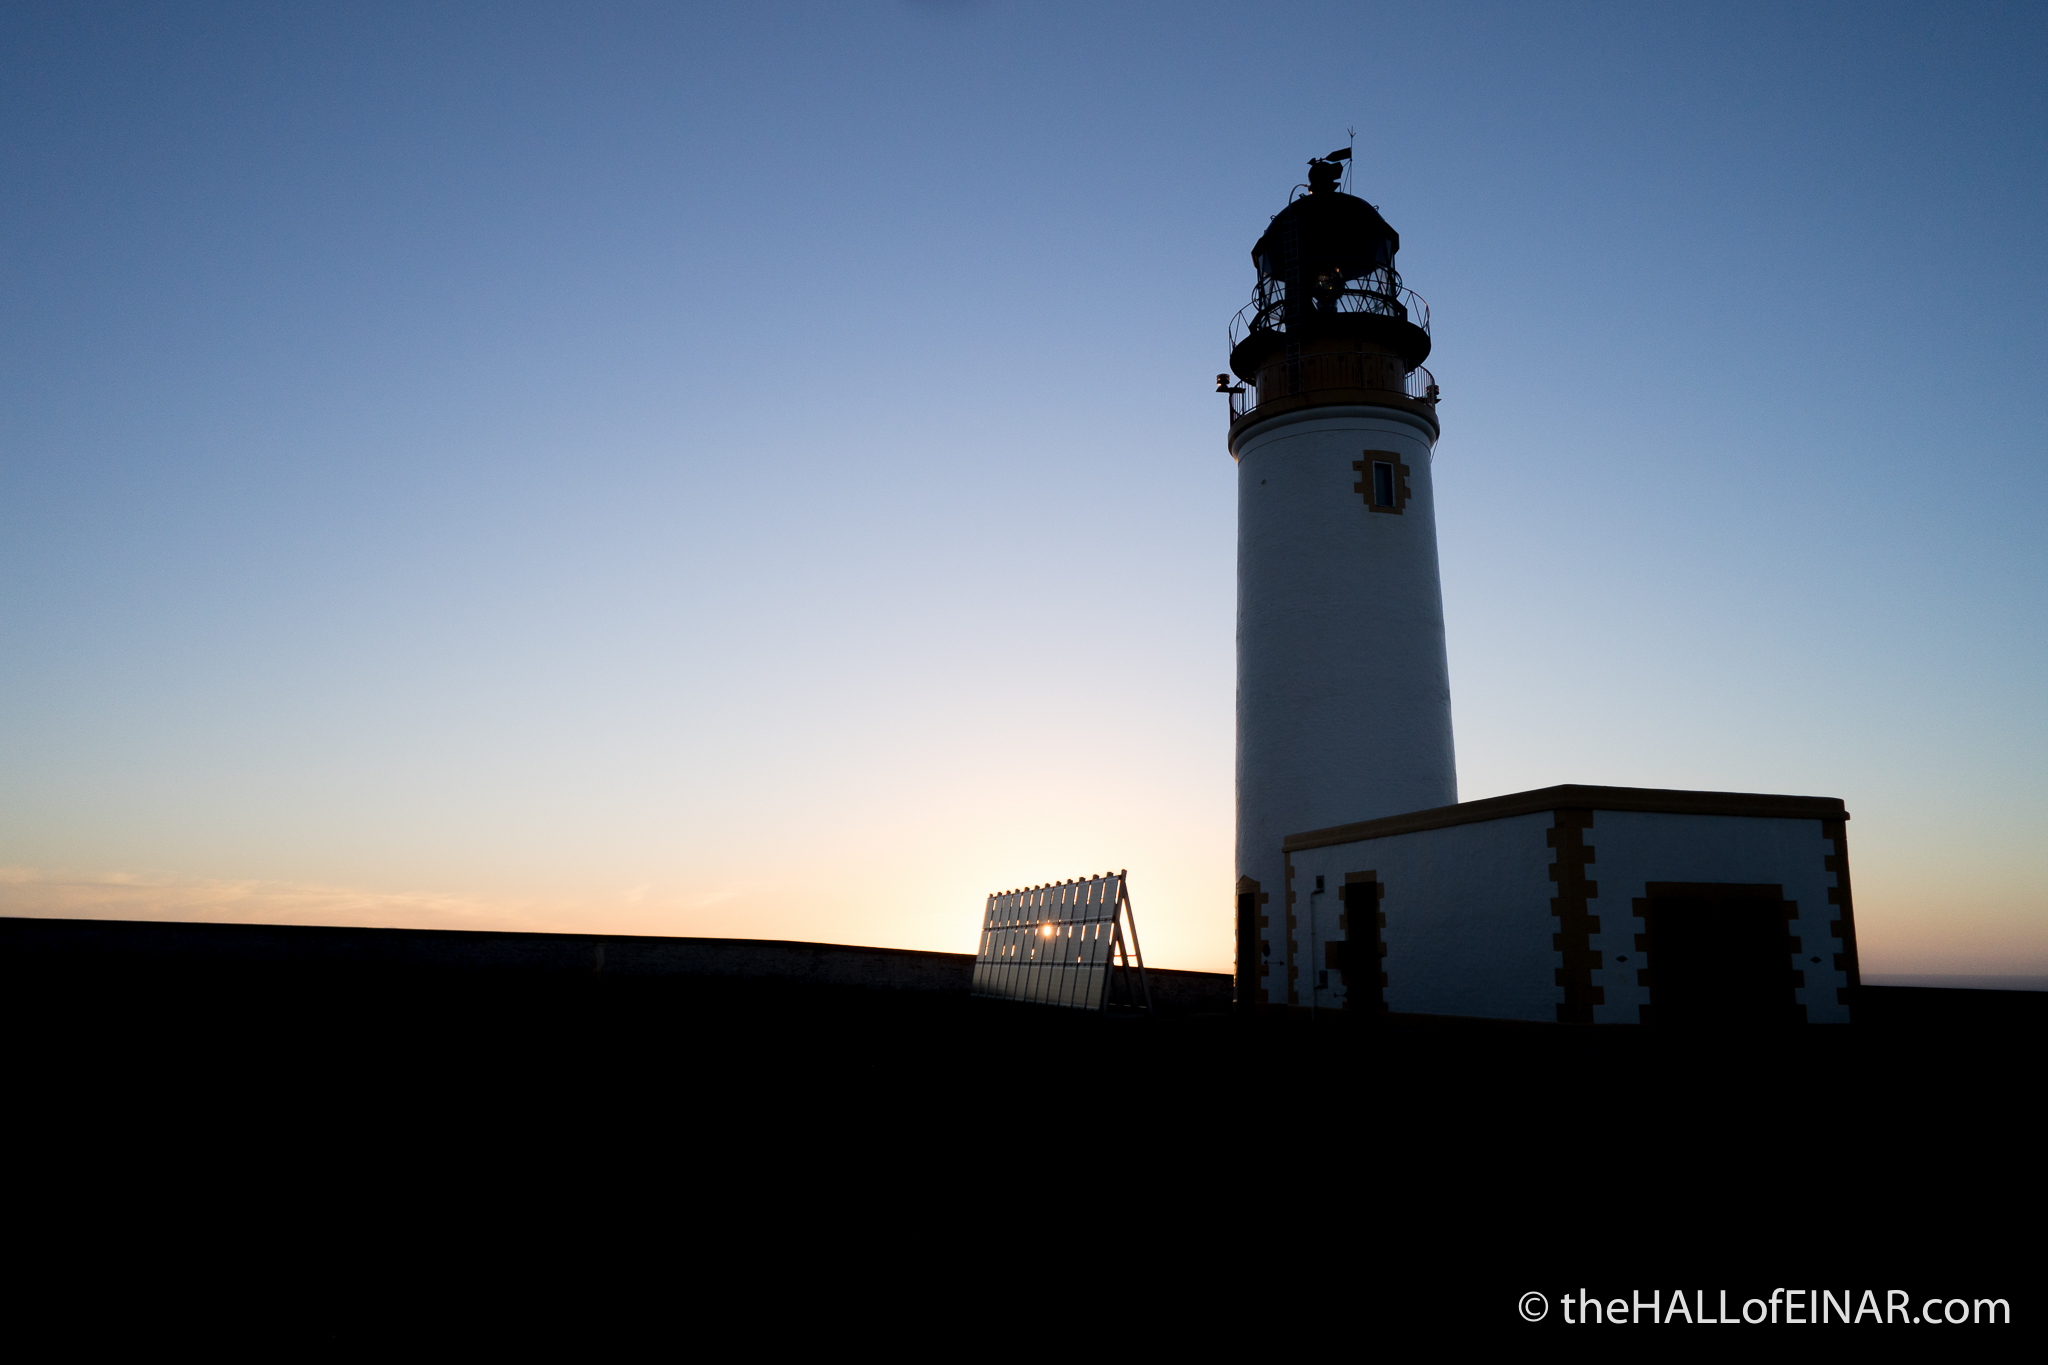 Sunset at Noup Head - photograph (c) David Bailey (not the)